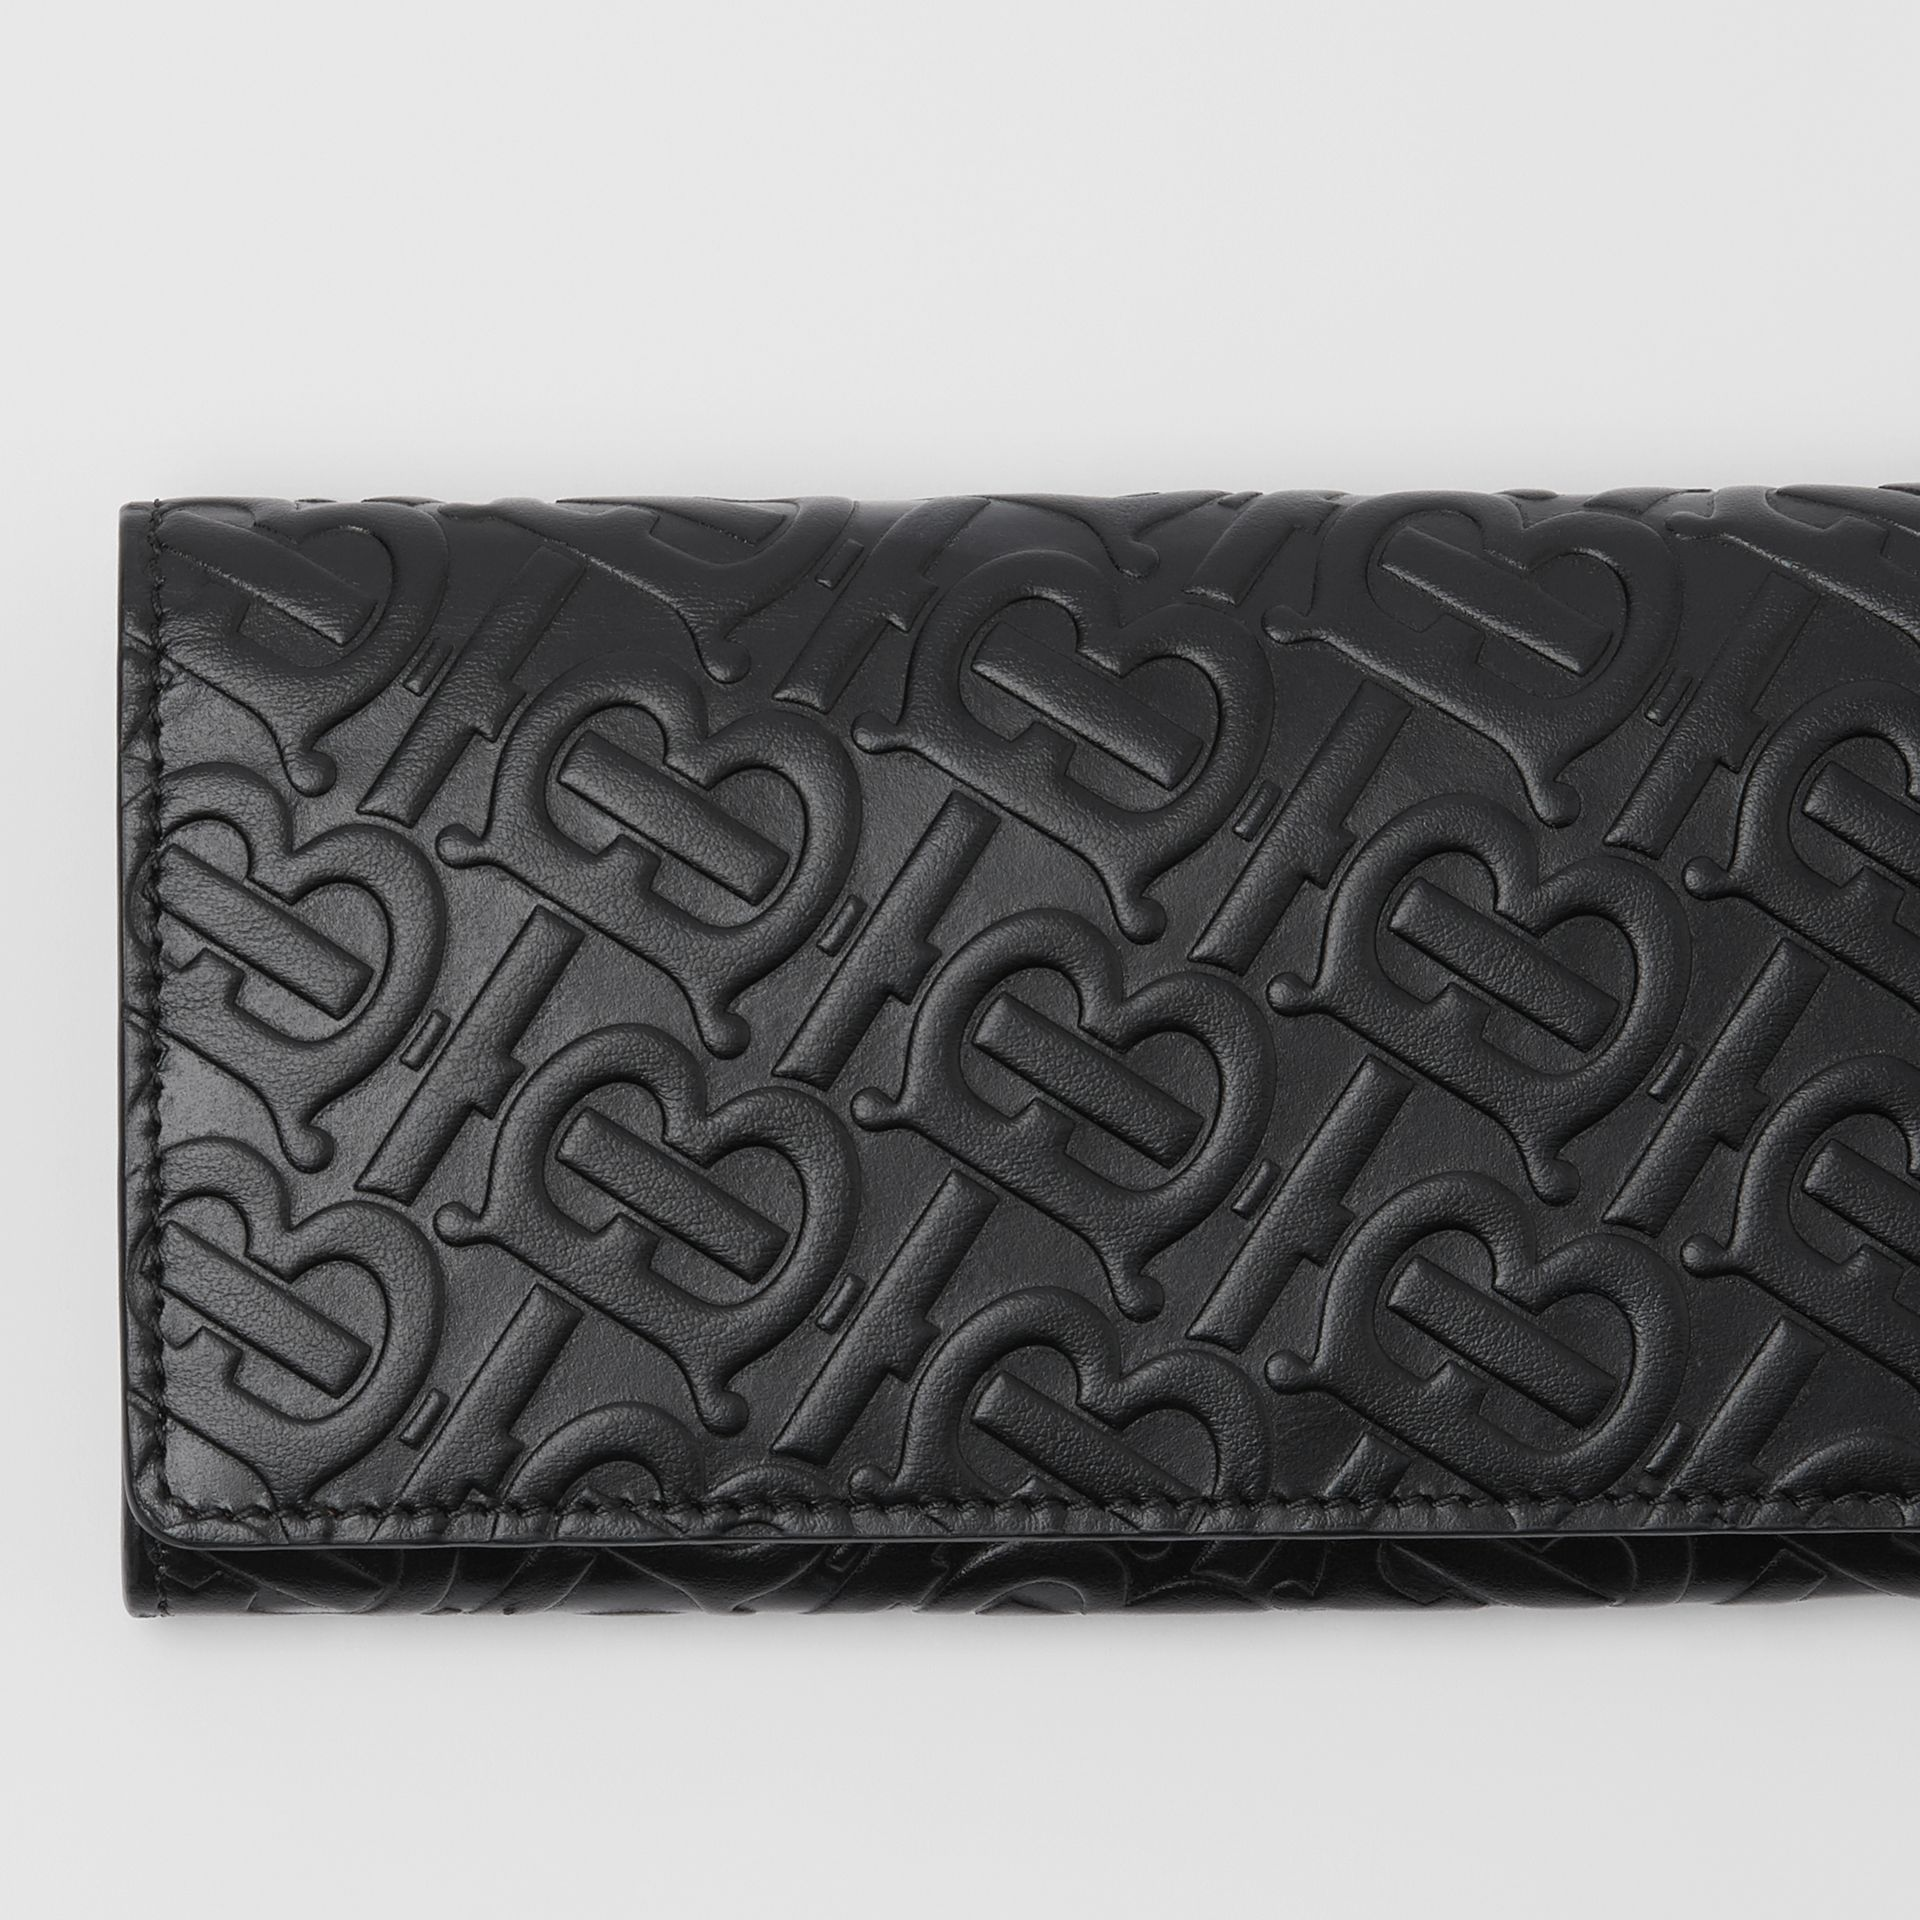 Monogram Leather Continental Wallet in Black - Women | Burberry Hong Kong - gallery image 1